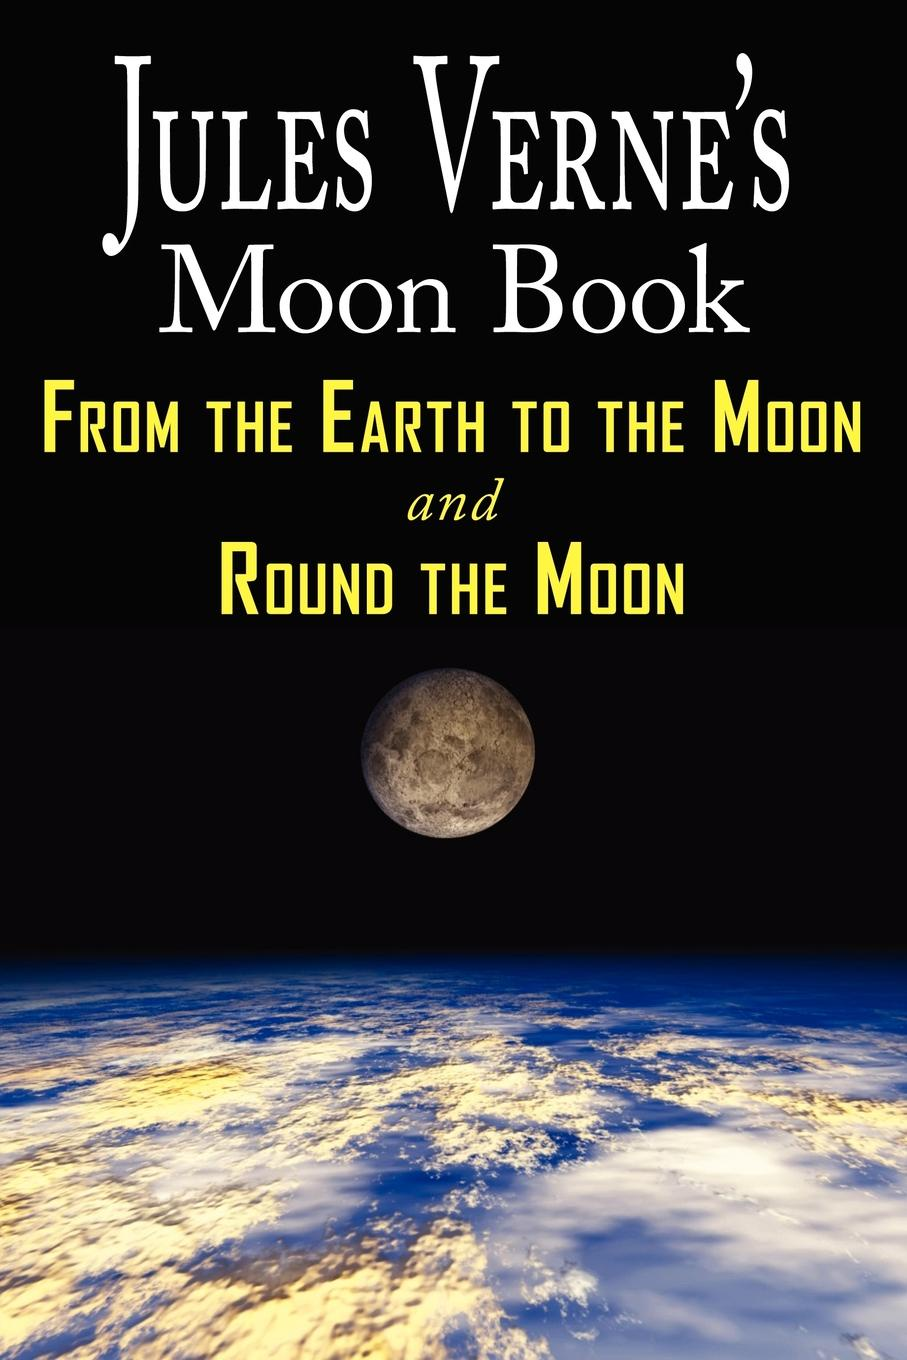 Jules Verne Jules Verne.s Moon Book - From Earth to the Moon . Round the Moon - Two Complete Books benjamin ludwig the original ginny moon